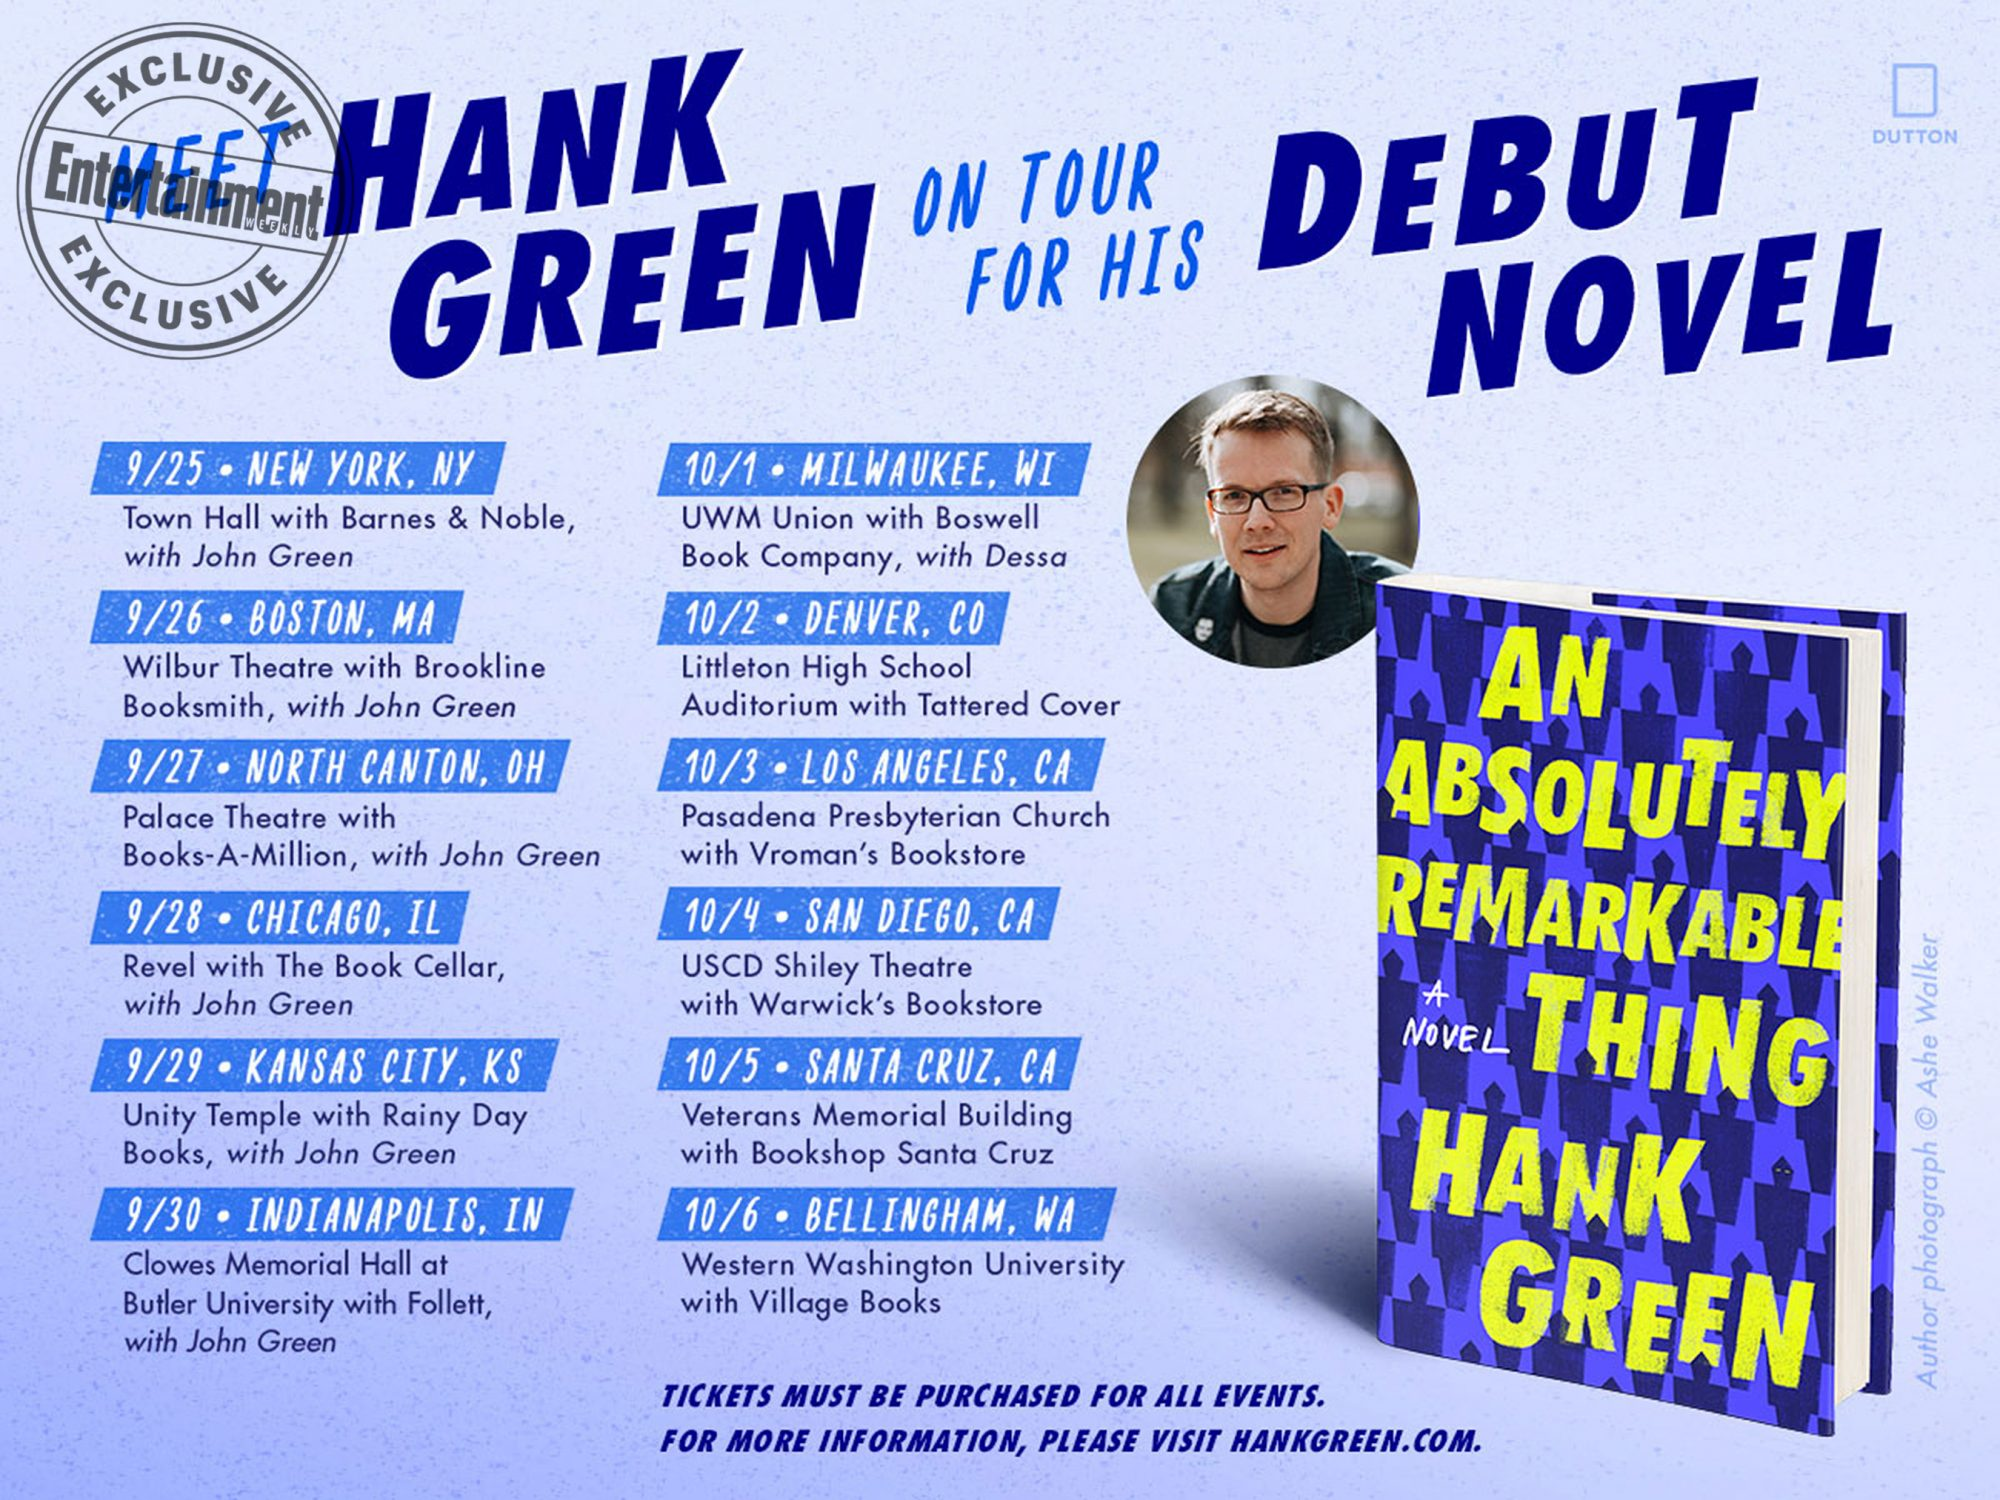 Hank Green An Absolutely Remarkable Thing book tour